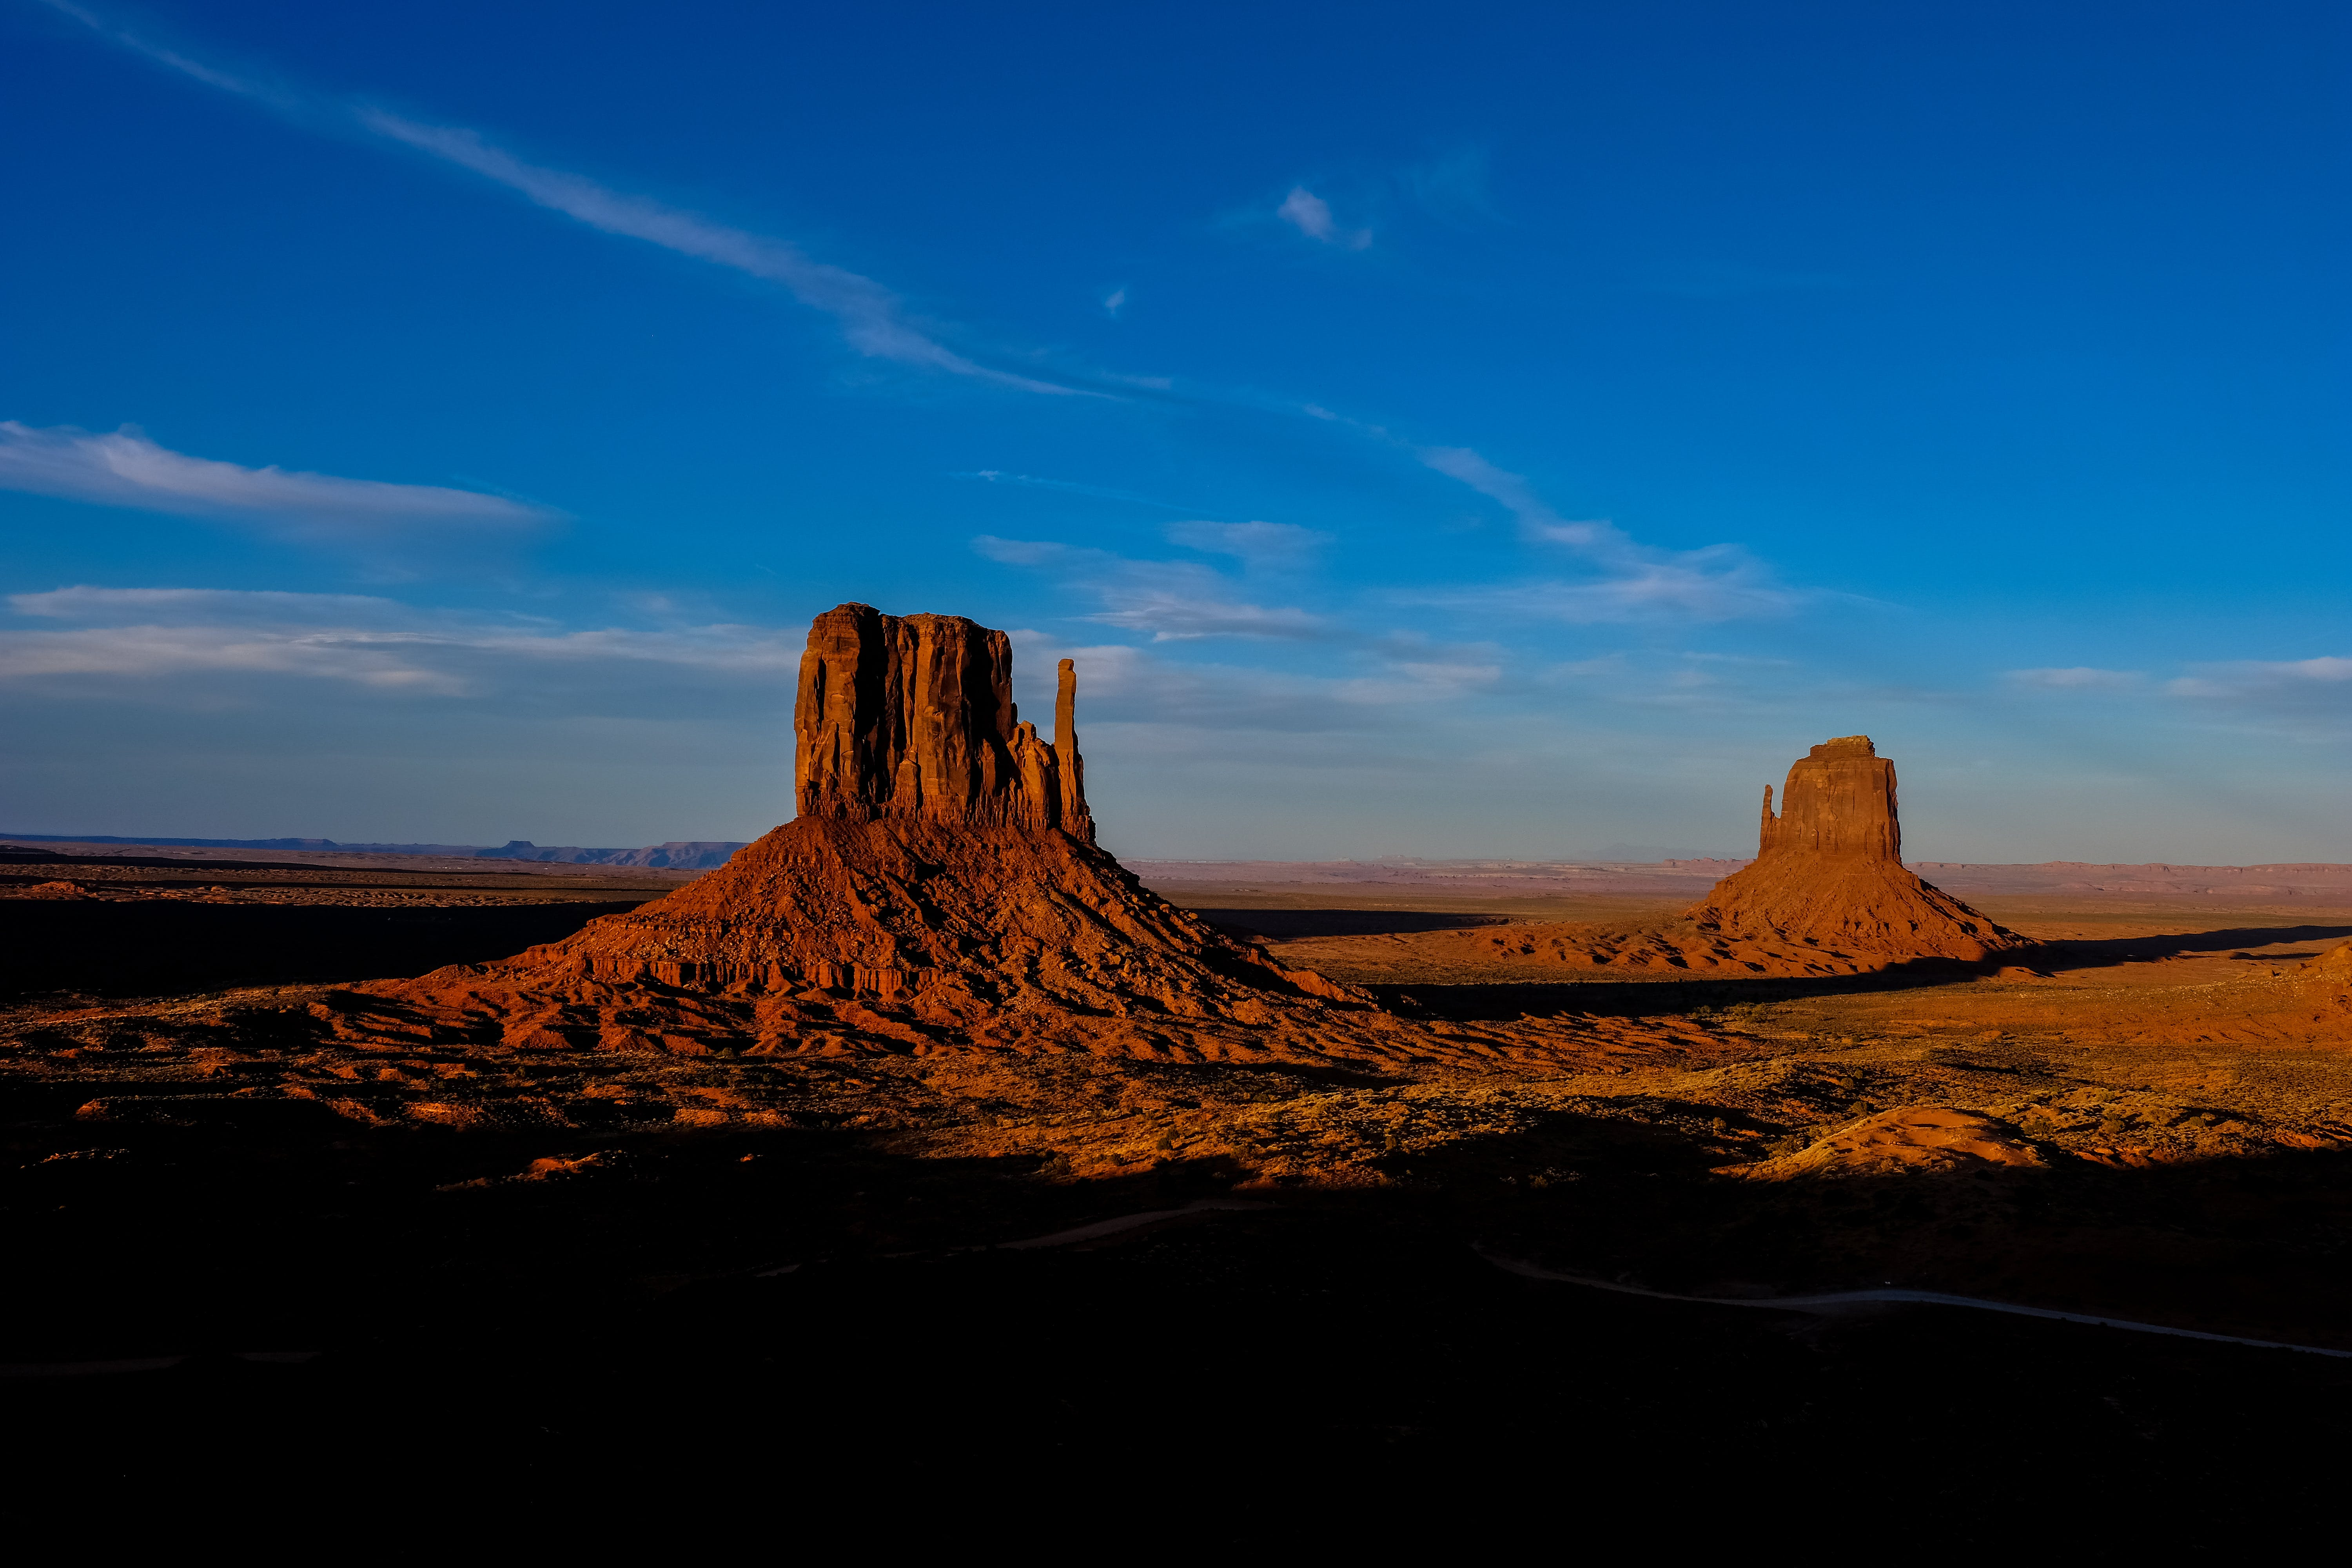 Photography of Rock Formations Under Blue Skies